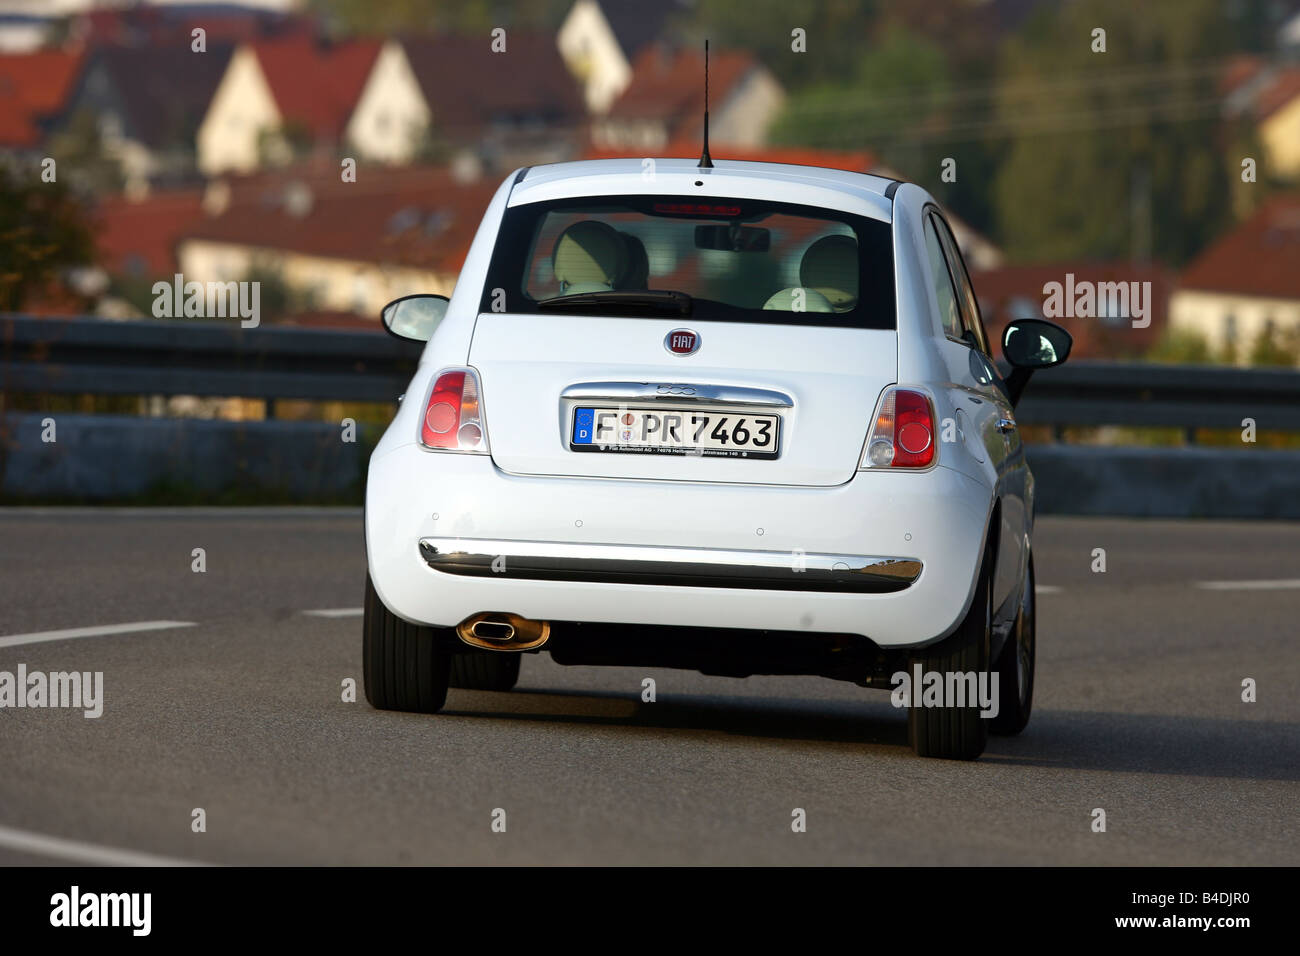 htm as road our to found fiat have top among thumb staff r out down finds cro a seats index back practical rear are in test doors more convertible than the fan many cars news certainly there roomier we